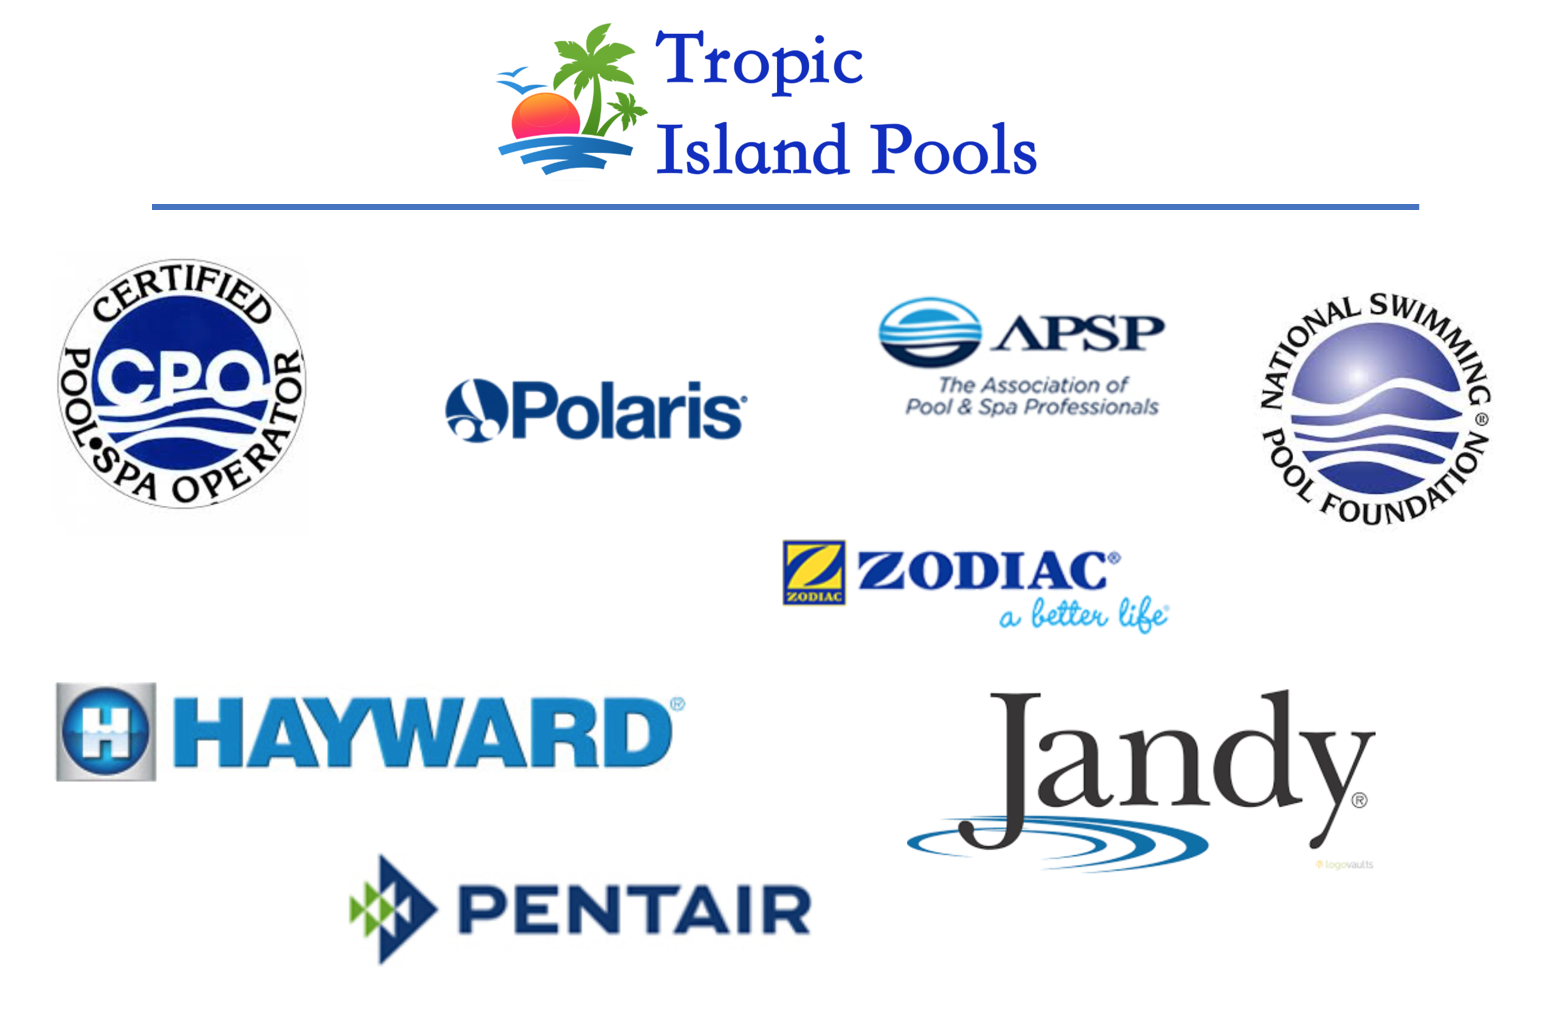 tropic-island-pools-services